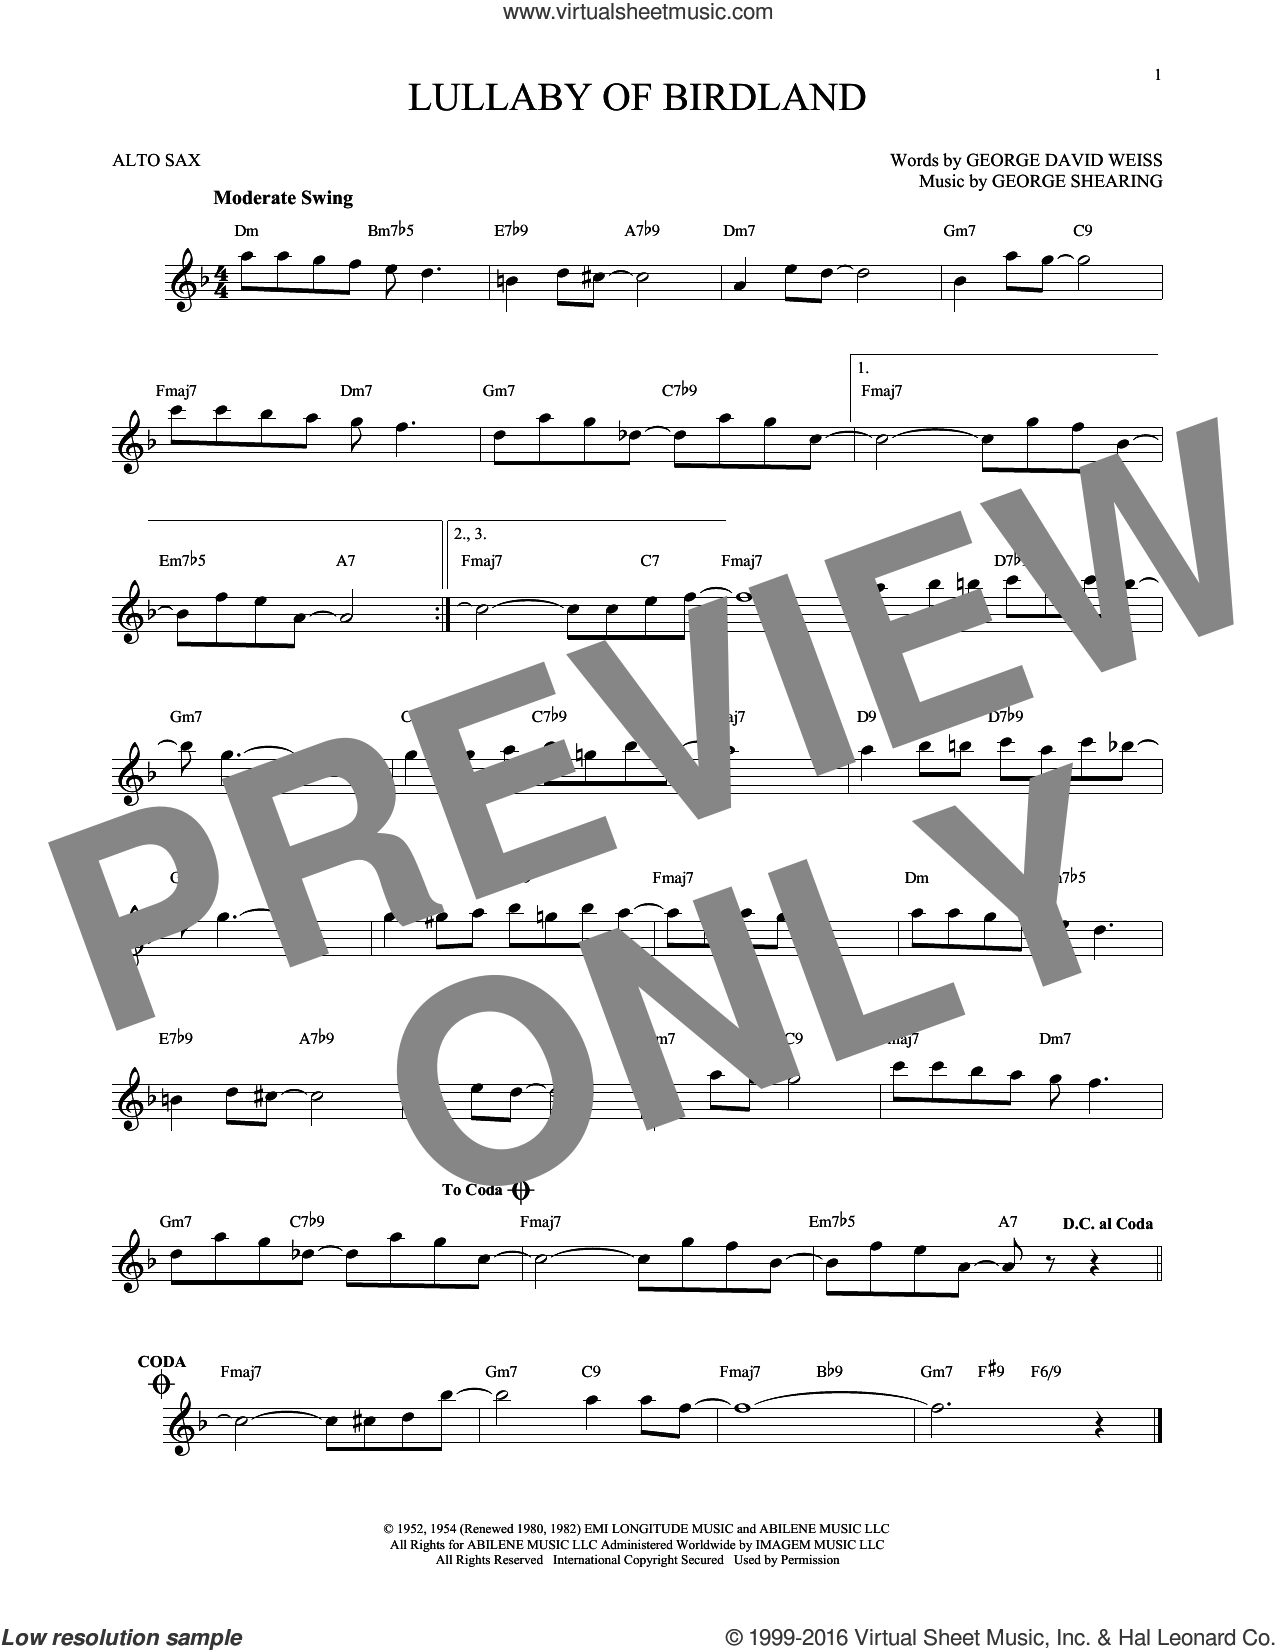 Lullaby Of Birdland sheet music for alto saxophone solo by George David Weiss and George Shearing, intermediate alto saxophone. Score Image Preview.